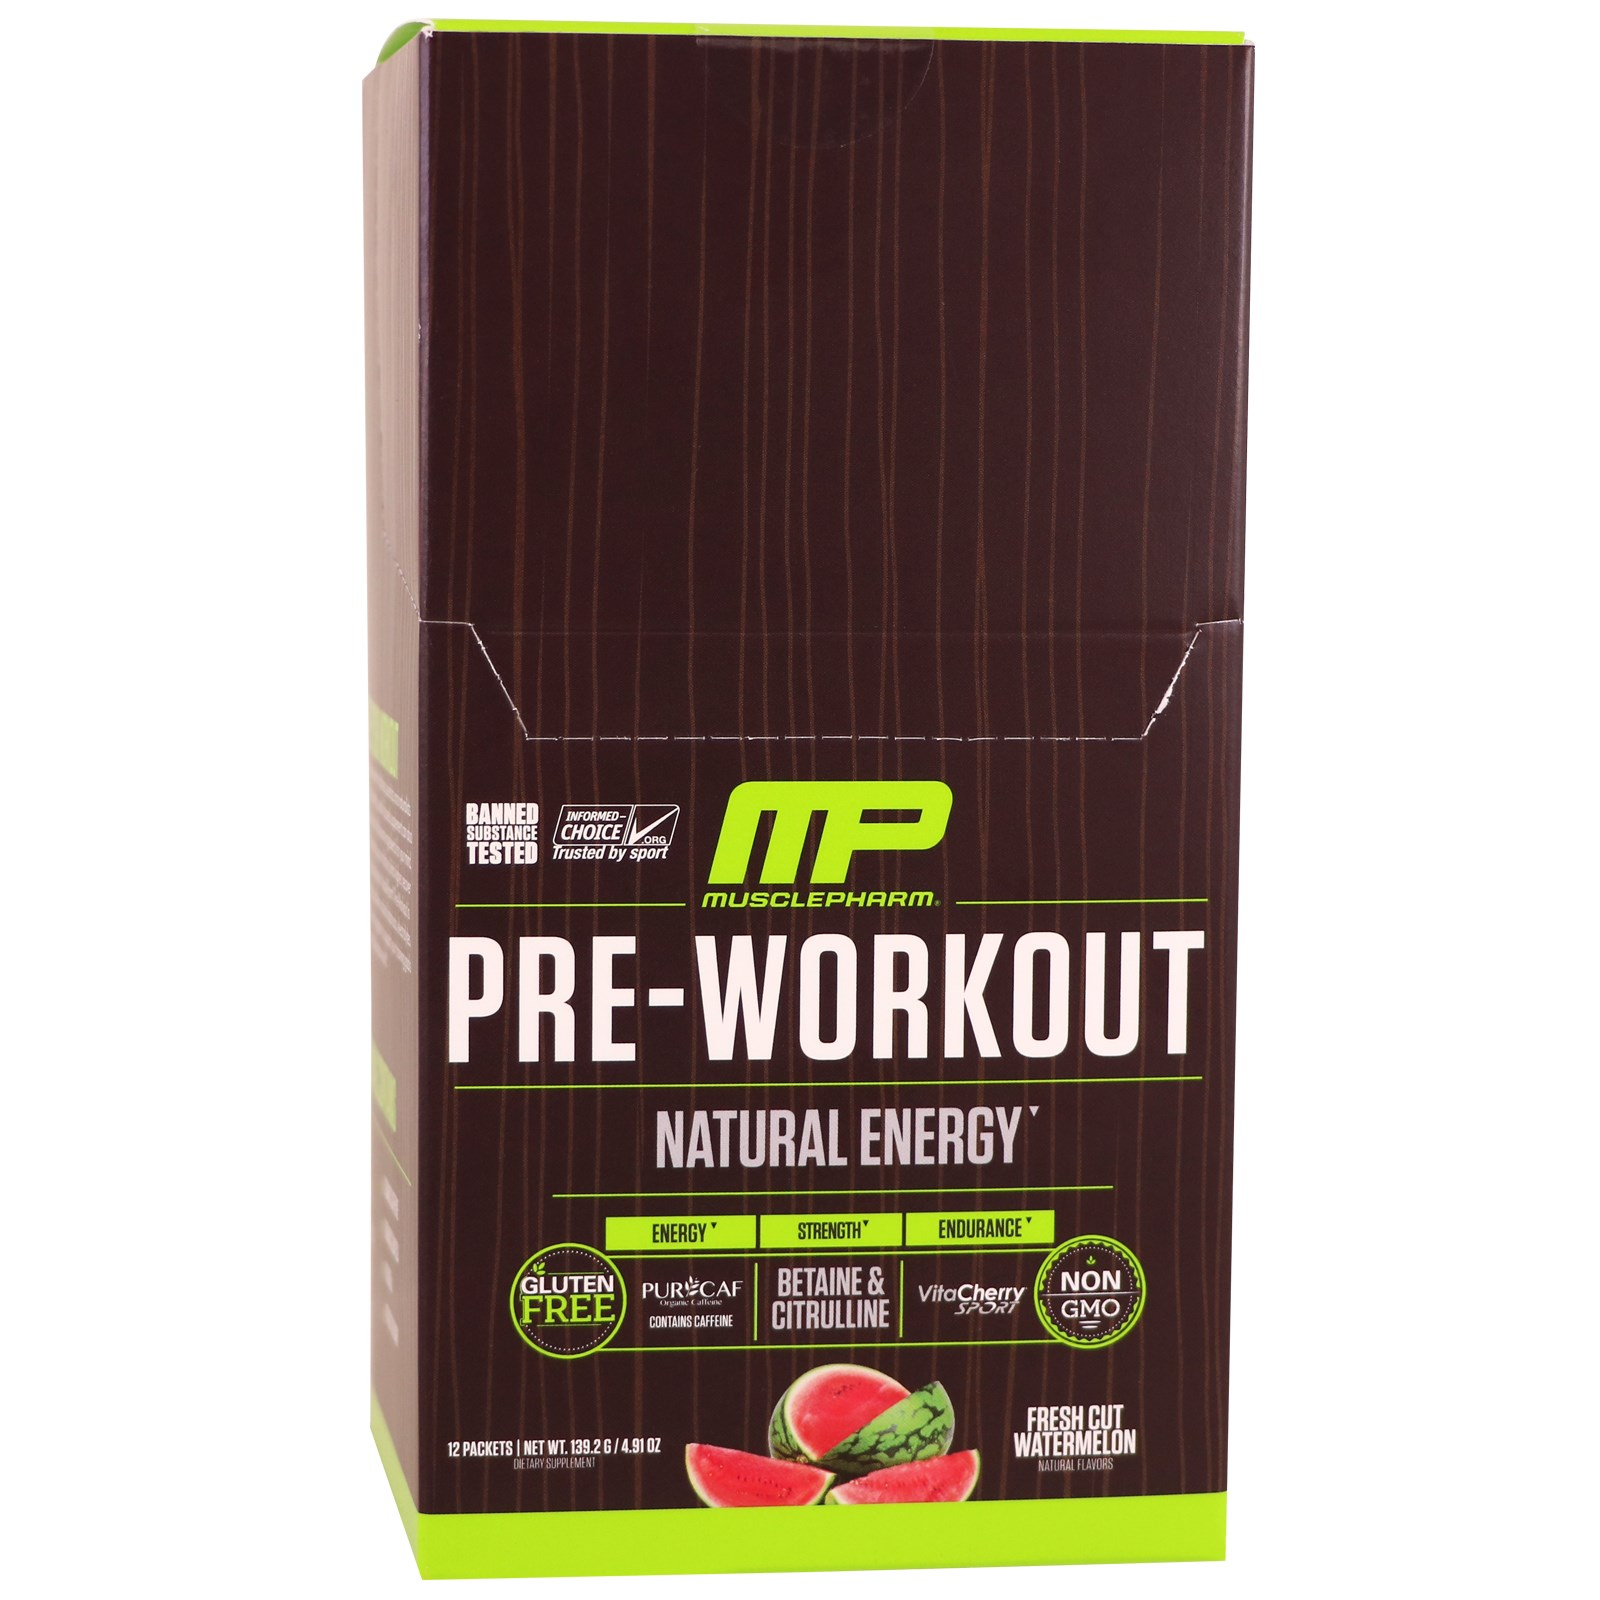 Pre Workout Packets Eoua Blog